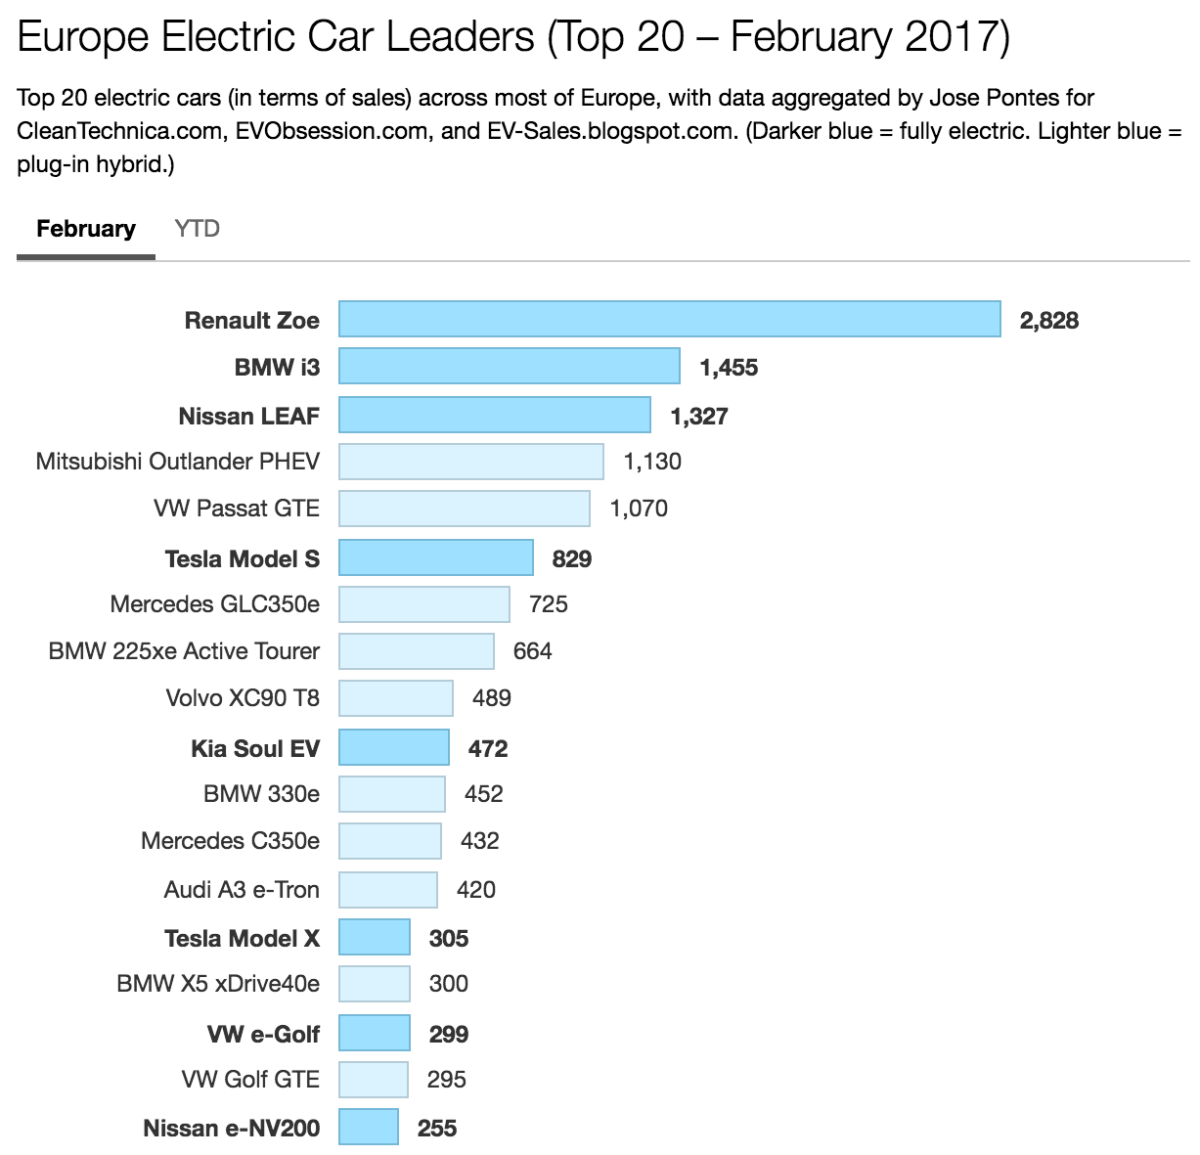 Europe Electric Car Sales Led By Renault Zoe, BMW i3, & Nissan LEAF